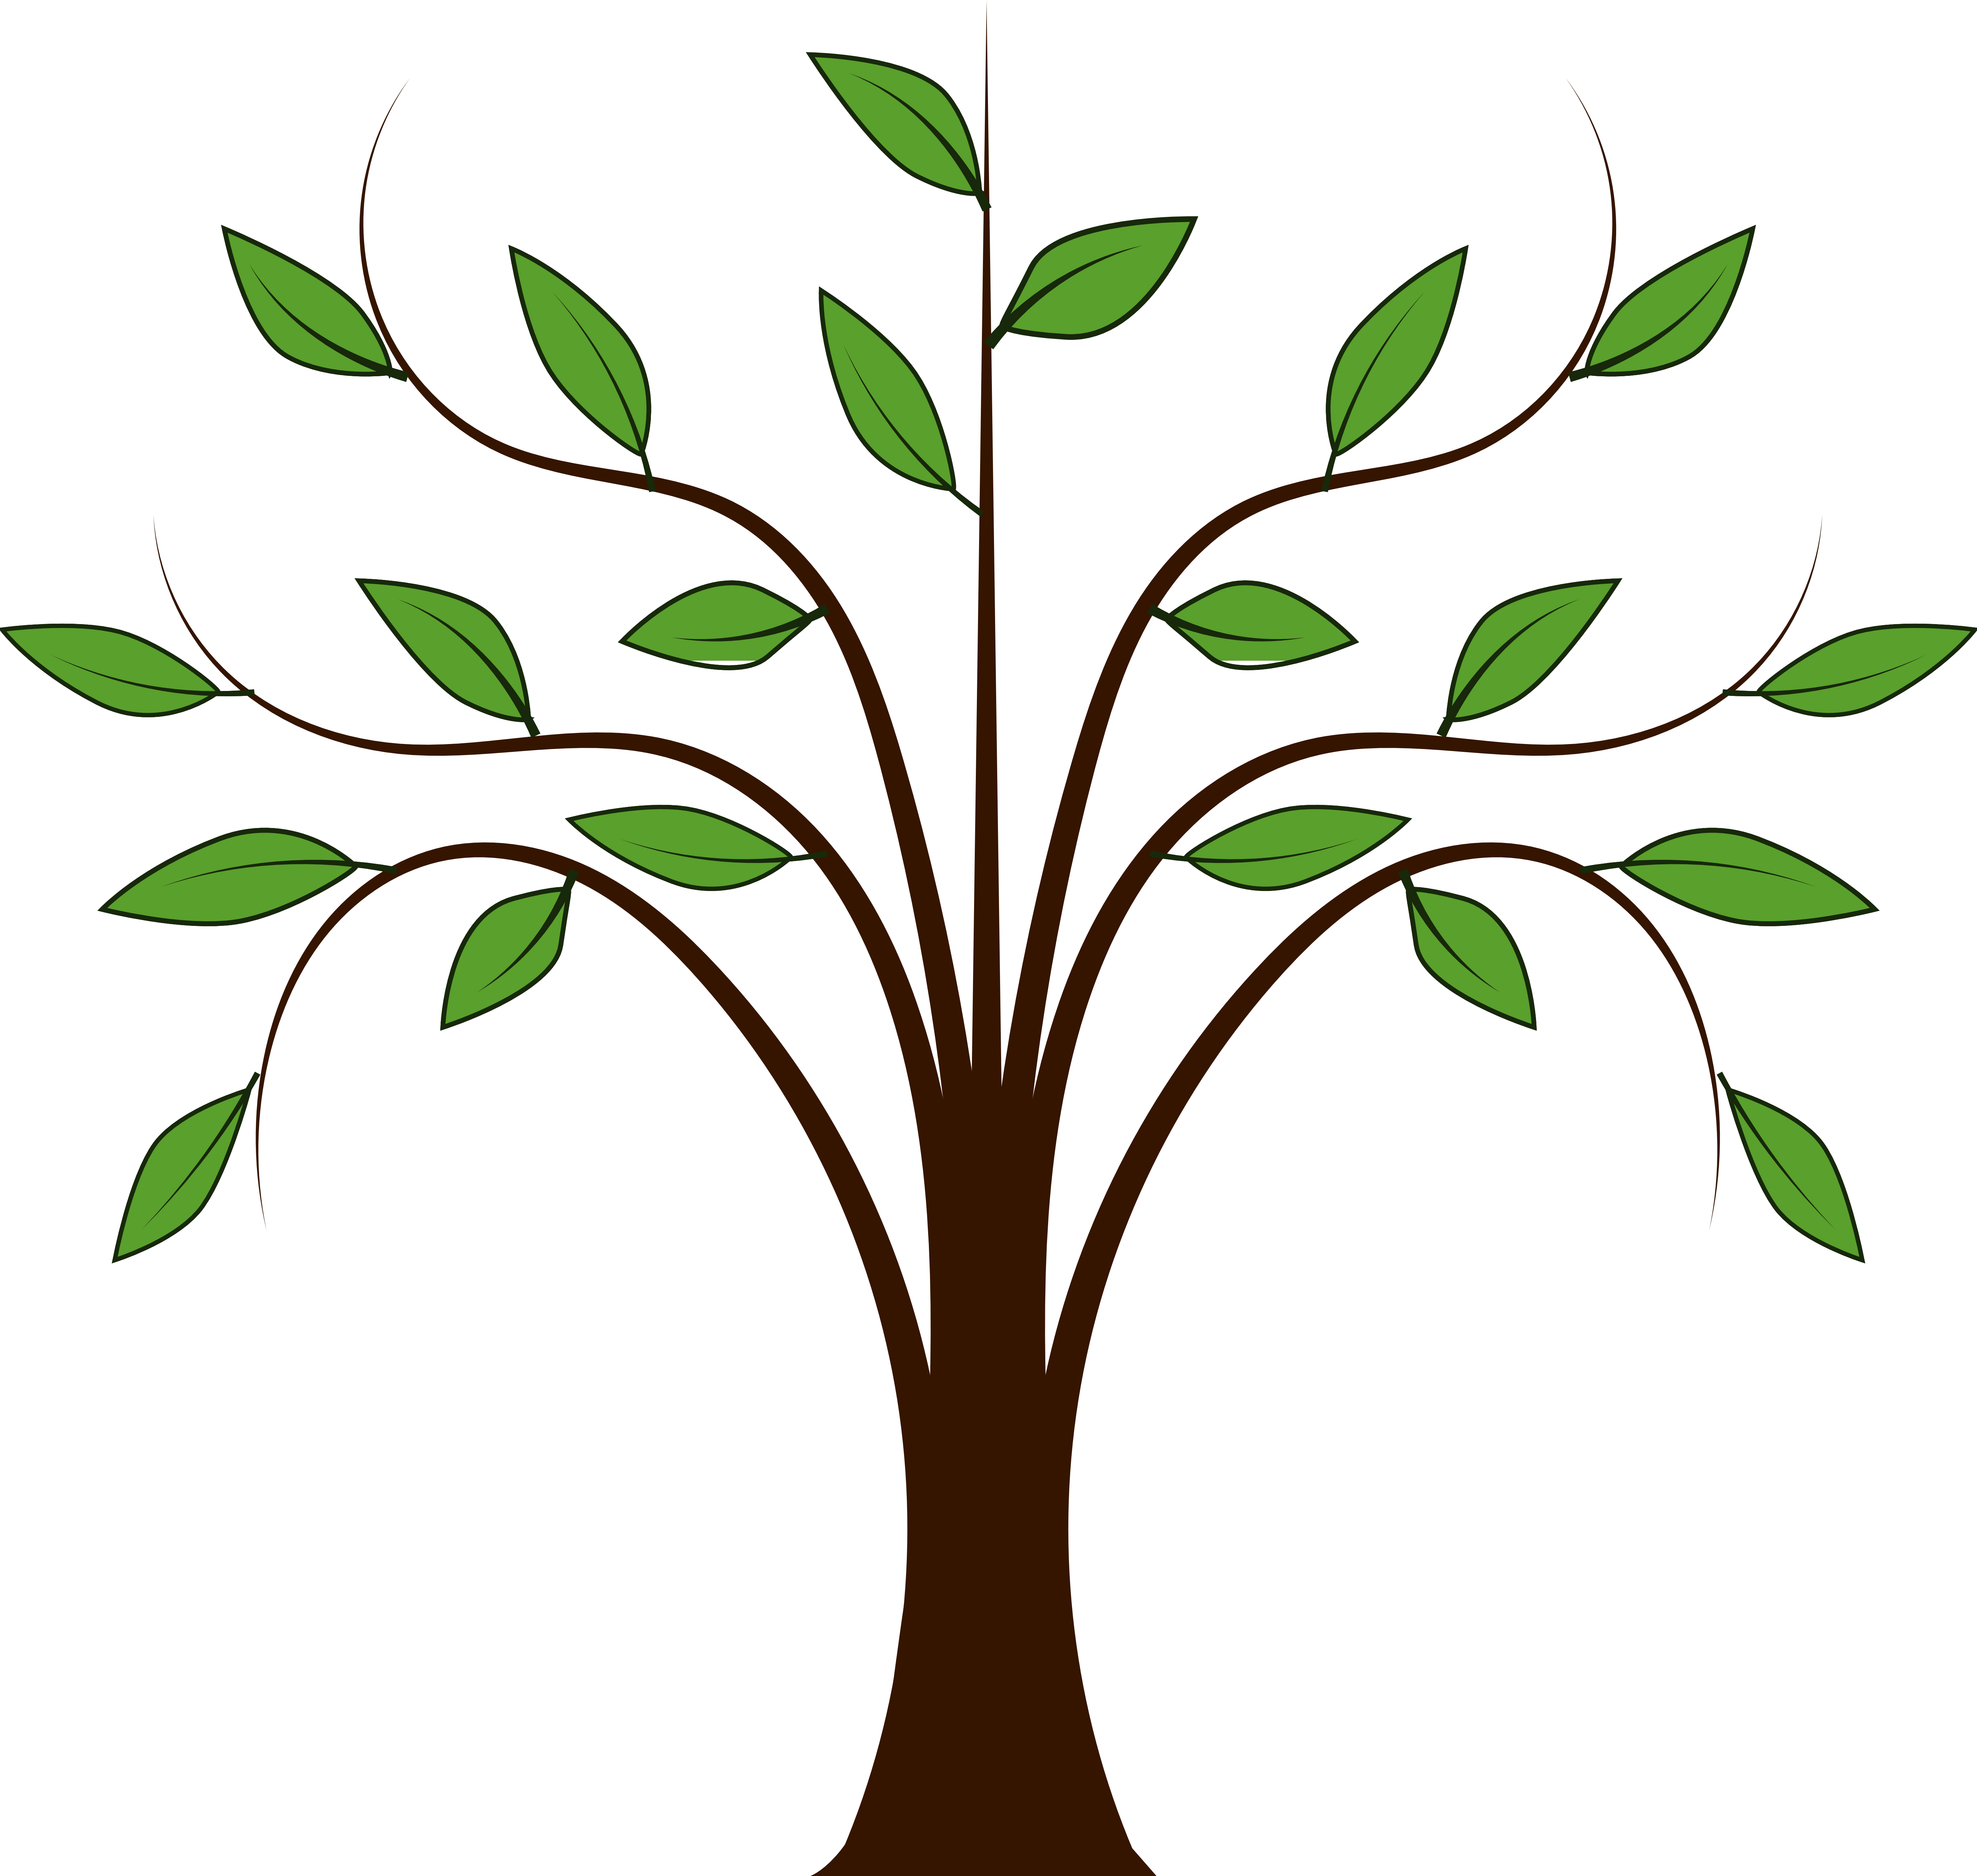 Tree clipart #5, Download drawings